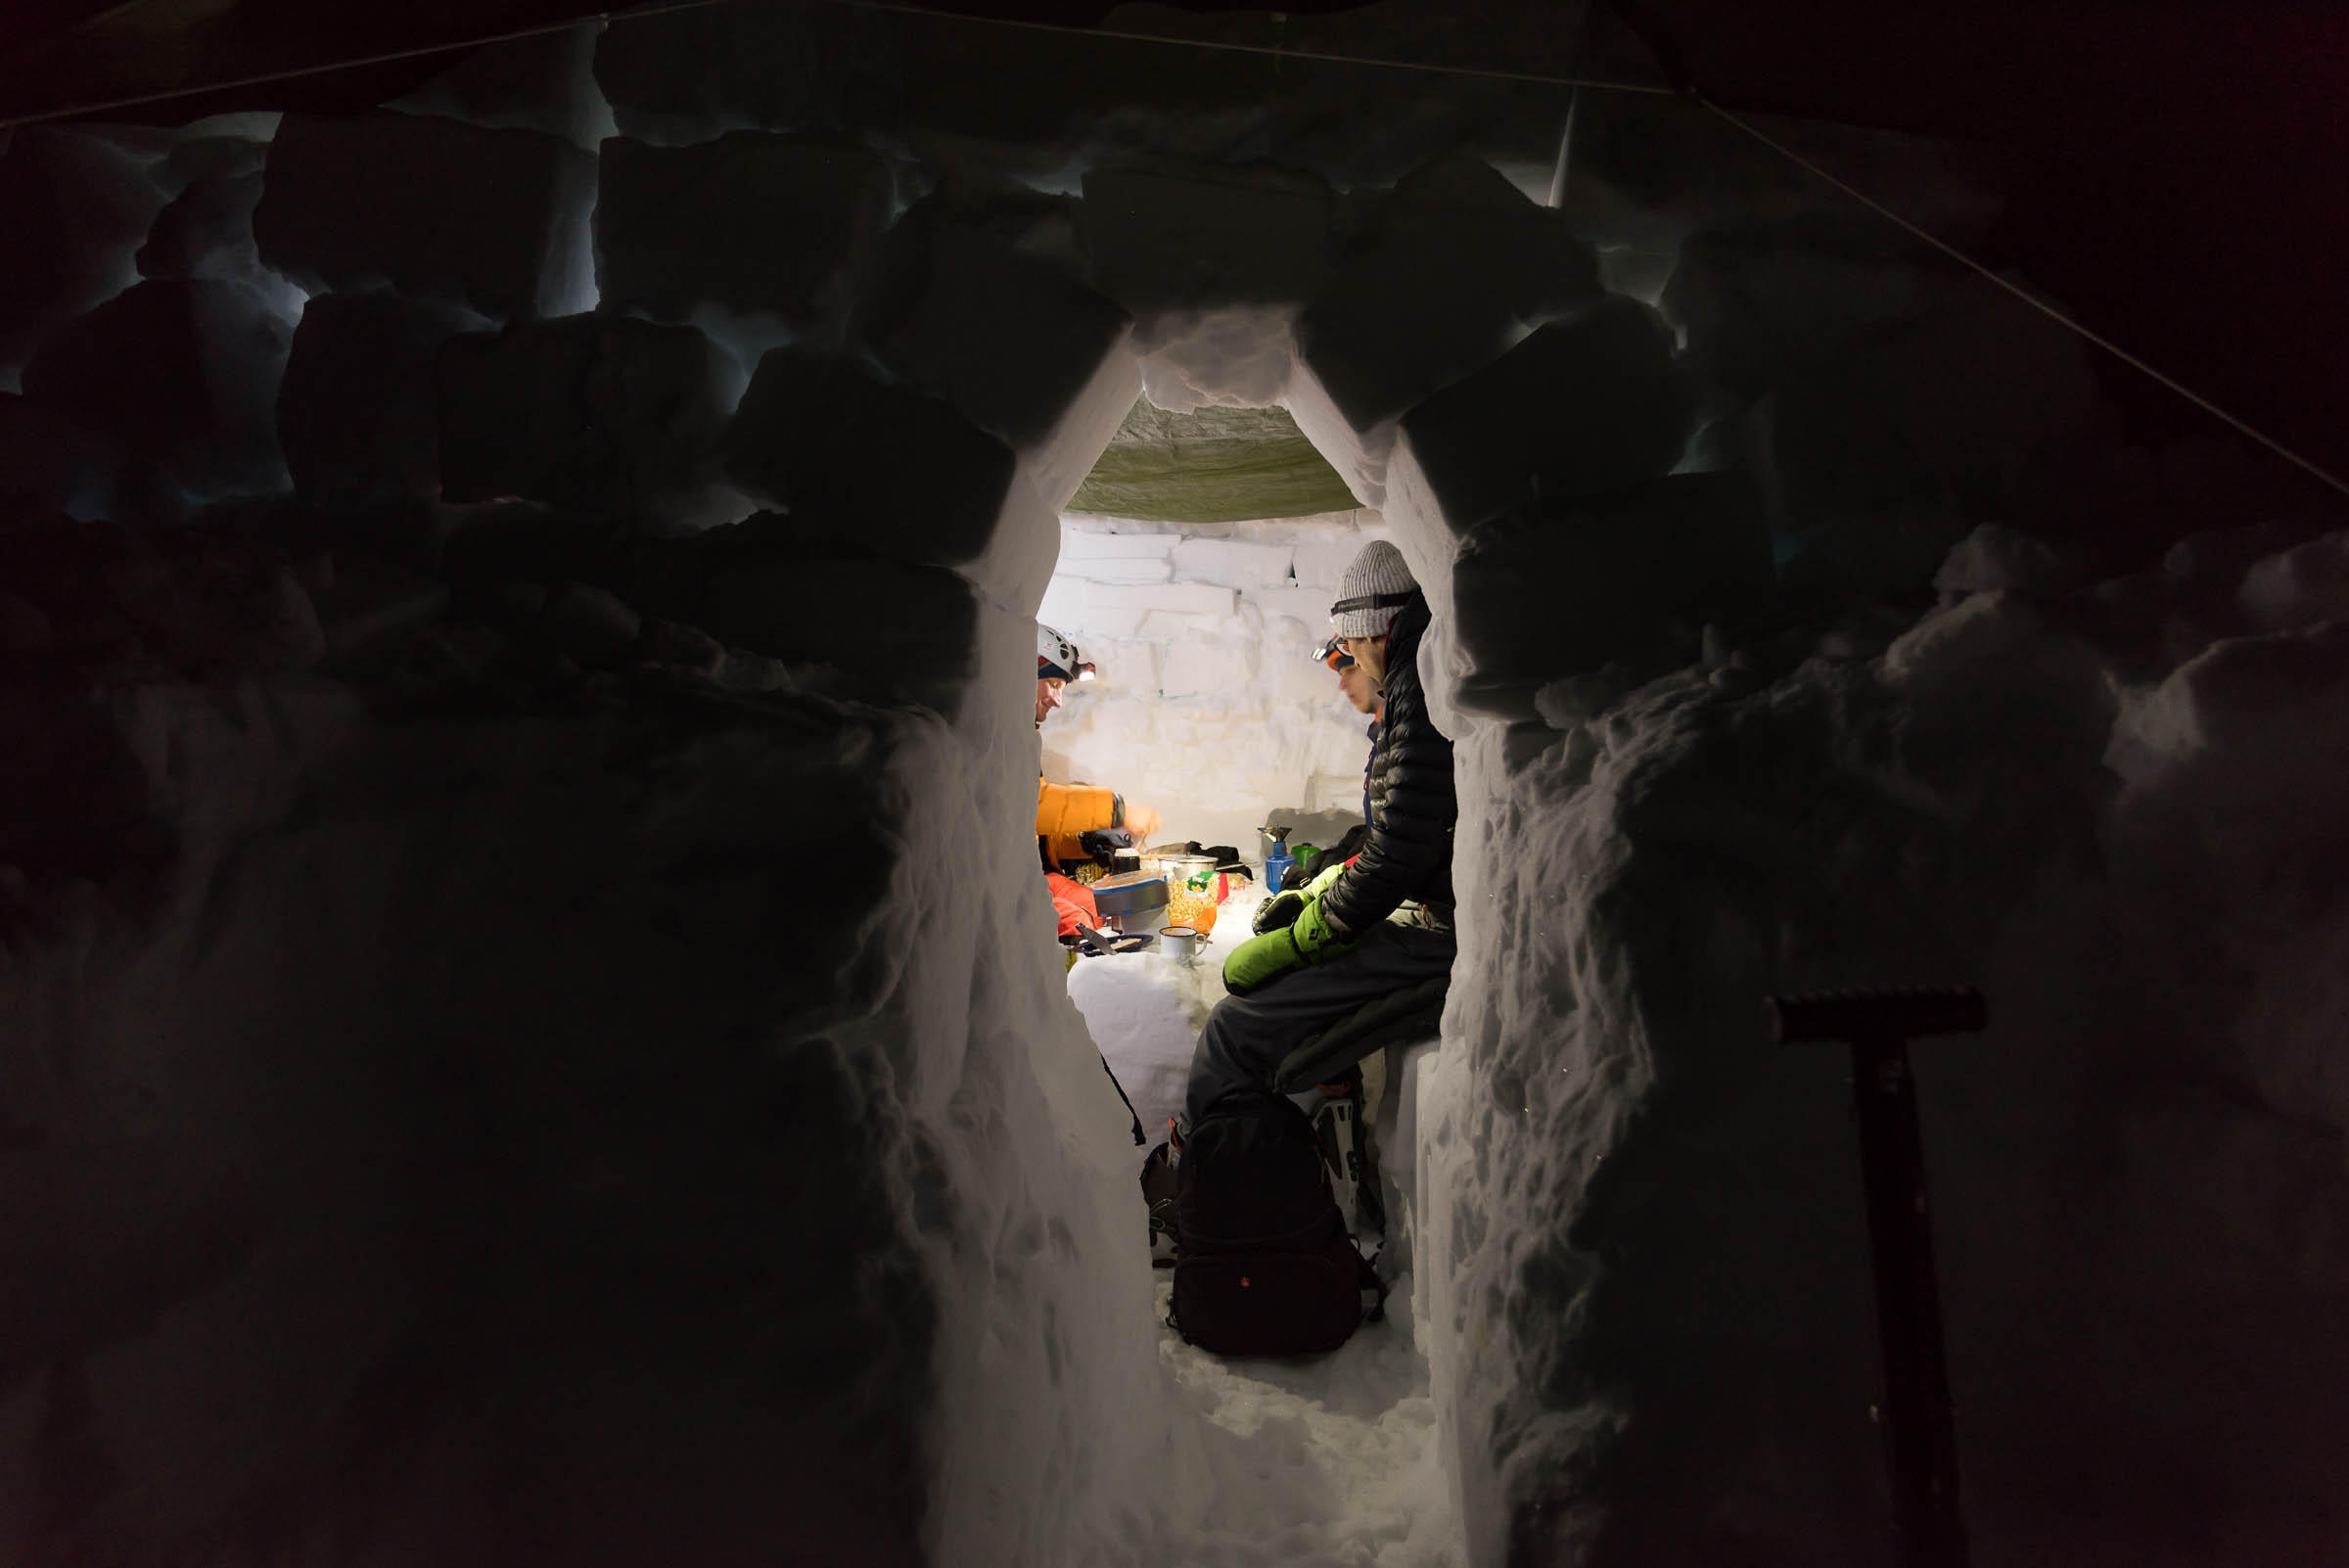 Men seen through hole in ice, sitting.